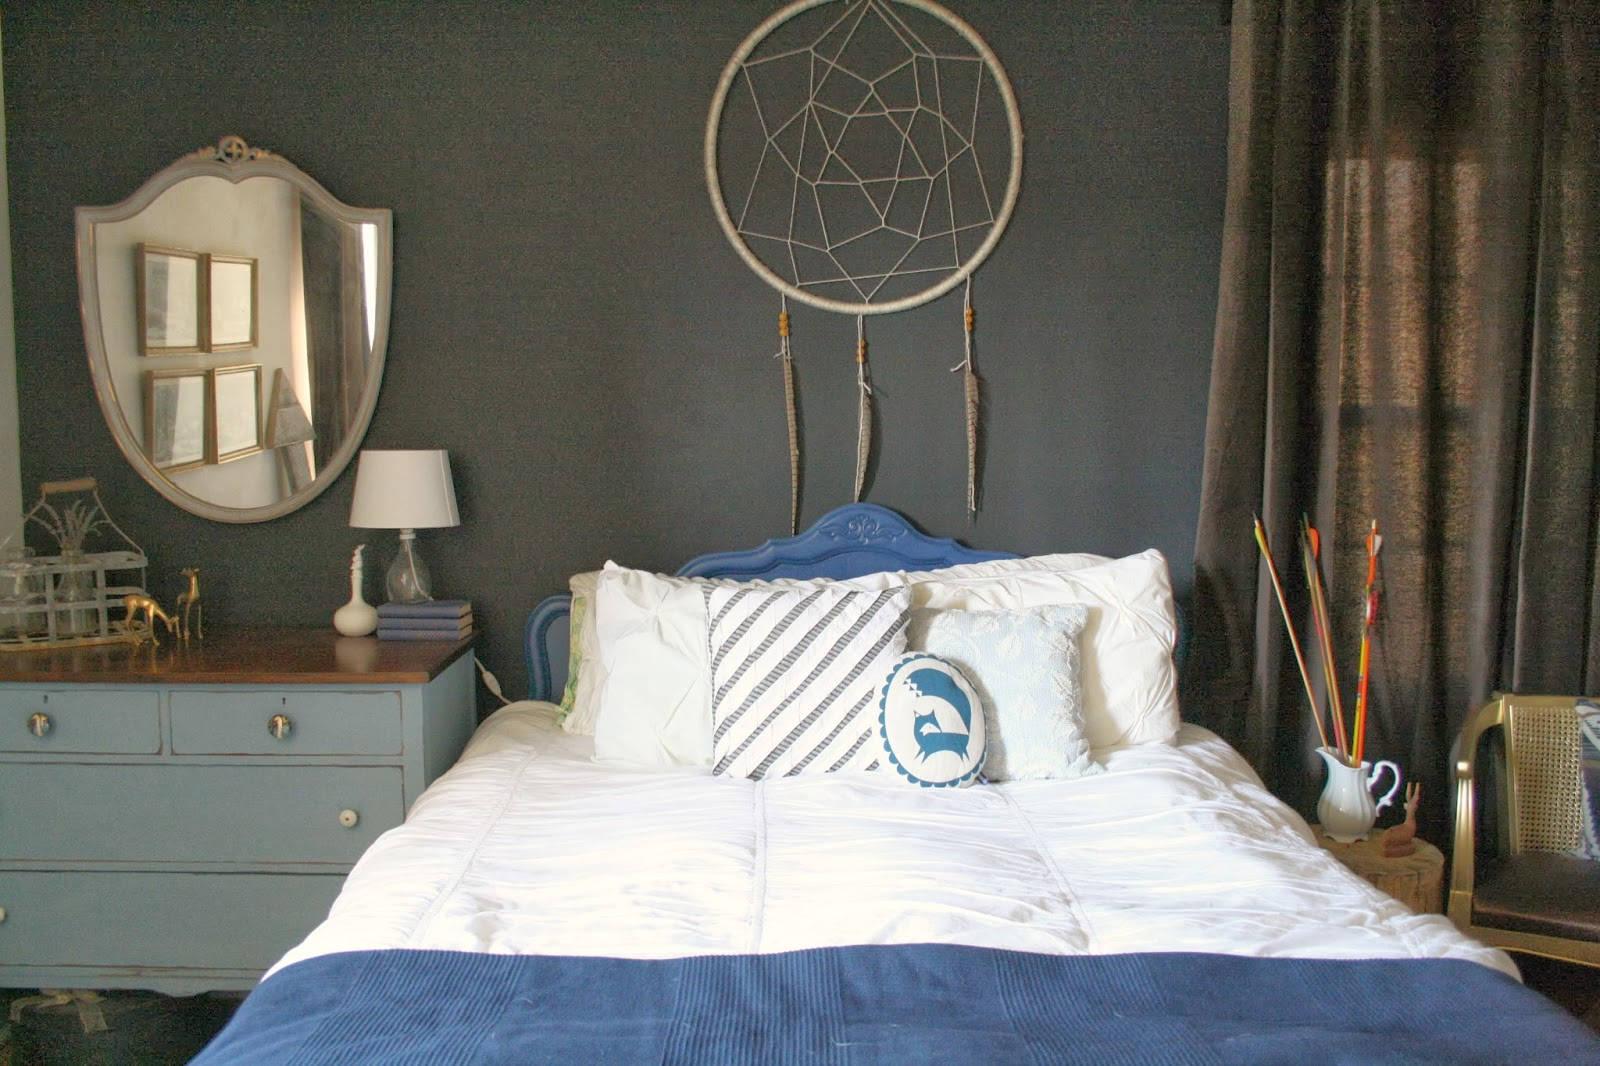 Dream Catcher Above Bed Moody Boho Bedroom Guest Room Reveal Cassie Bustamante 8